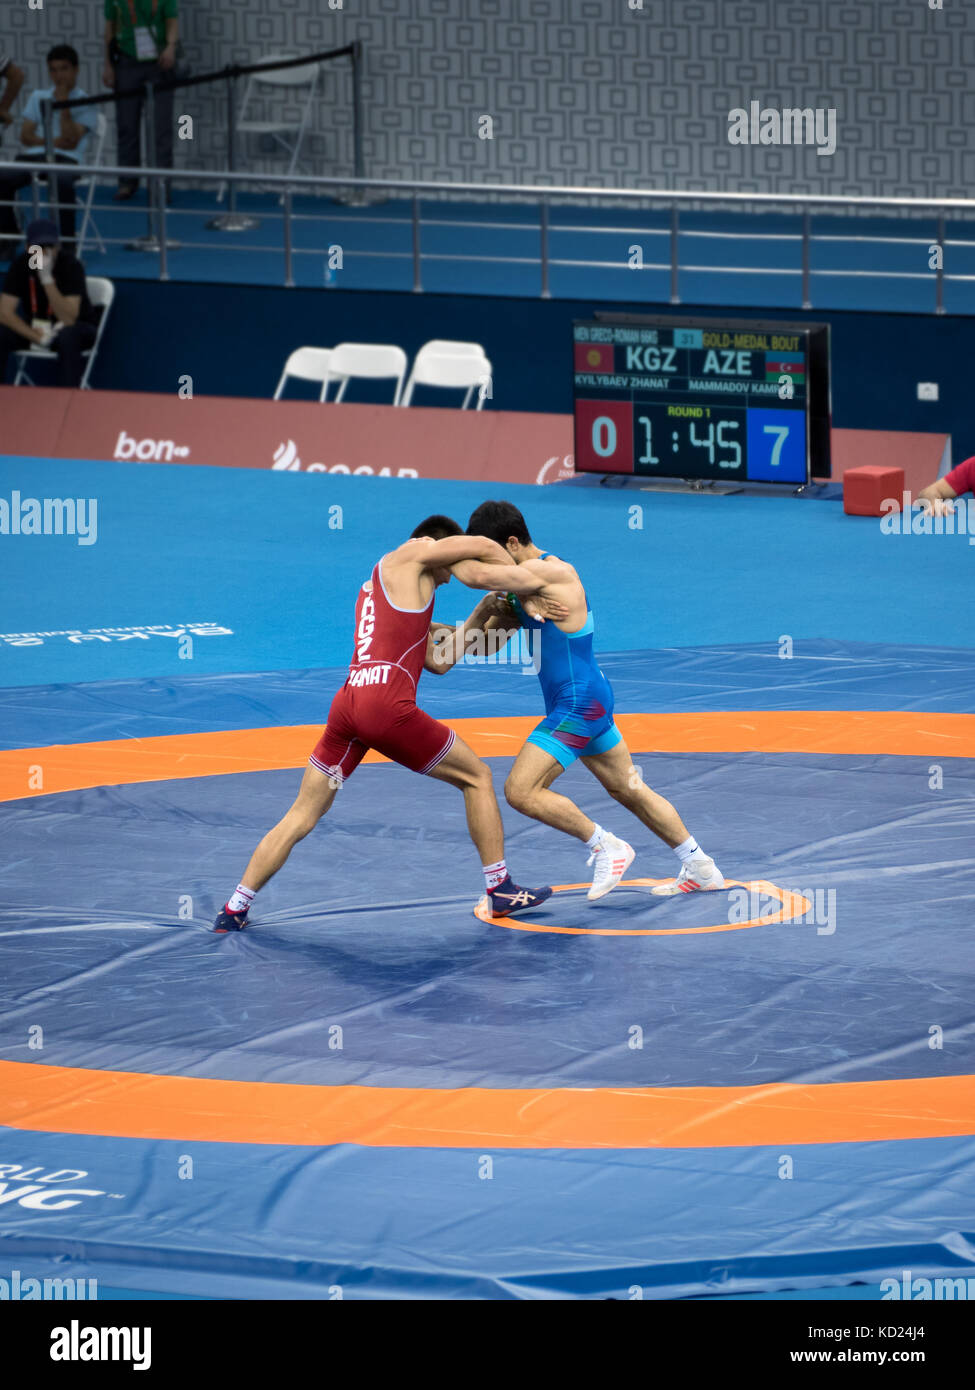 Baku, Azerbaijan - May 18, 2017 : Men's Greco Roman Wrestling 66kg final at 4th Islamic Solidarity Games - Stock Image